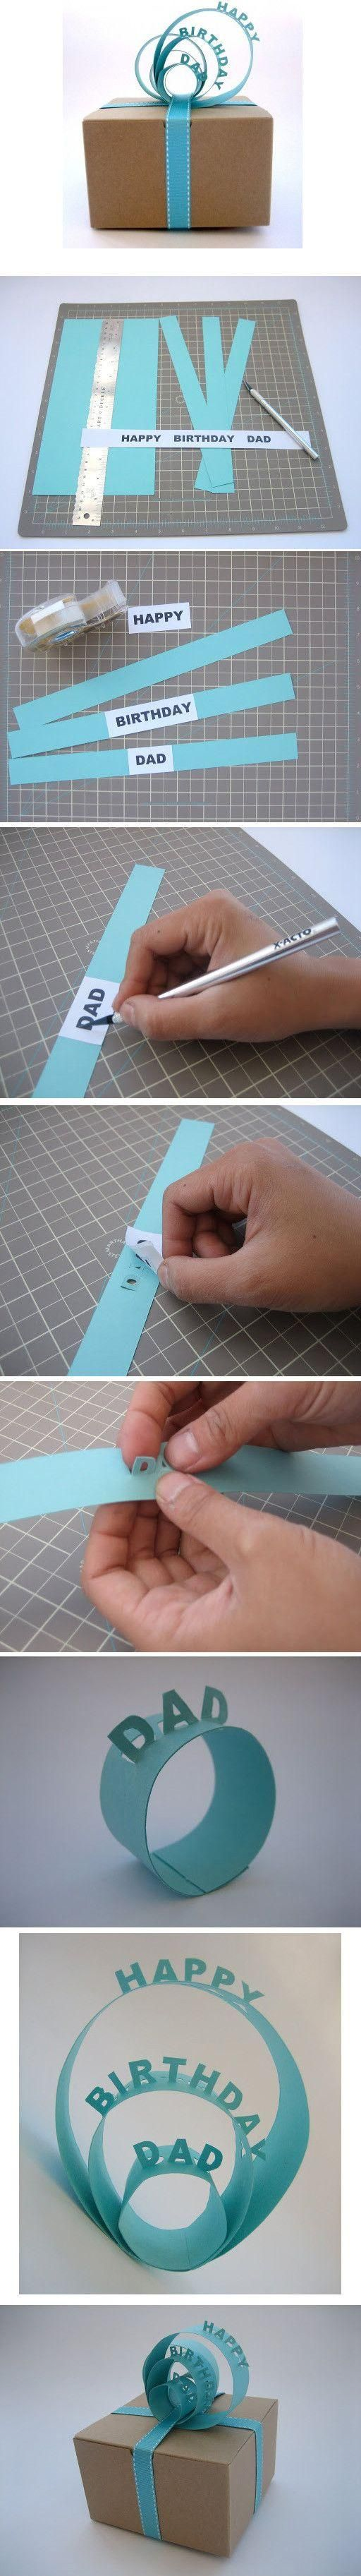 Pop-up message ribbon made of strips of paper.